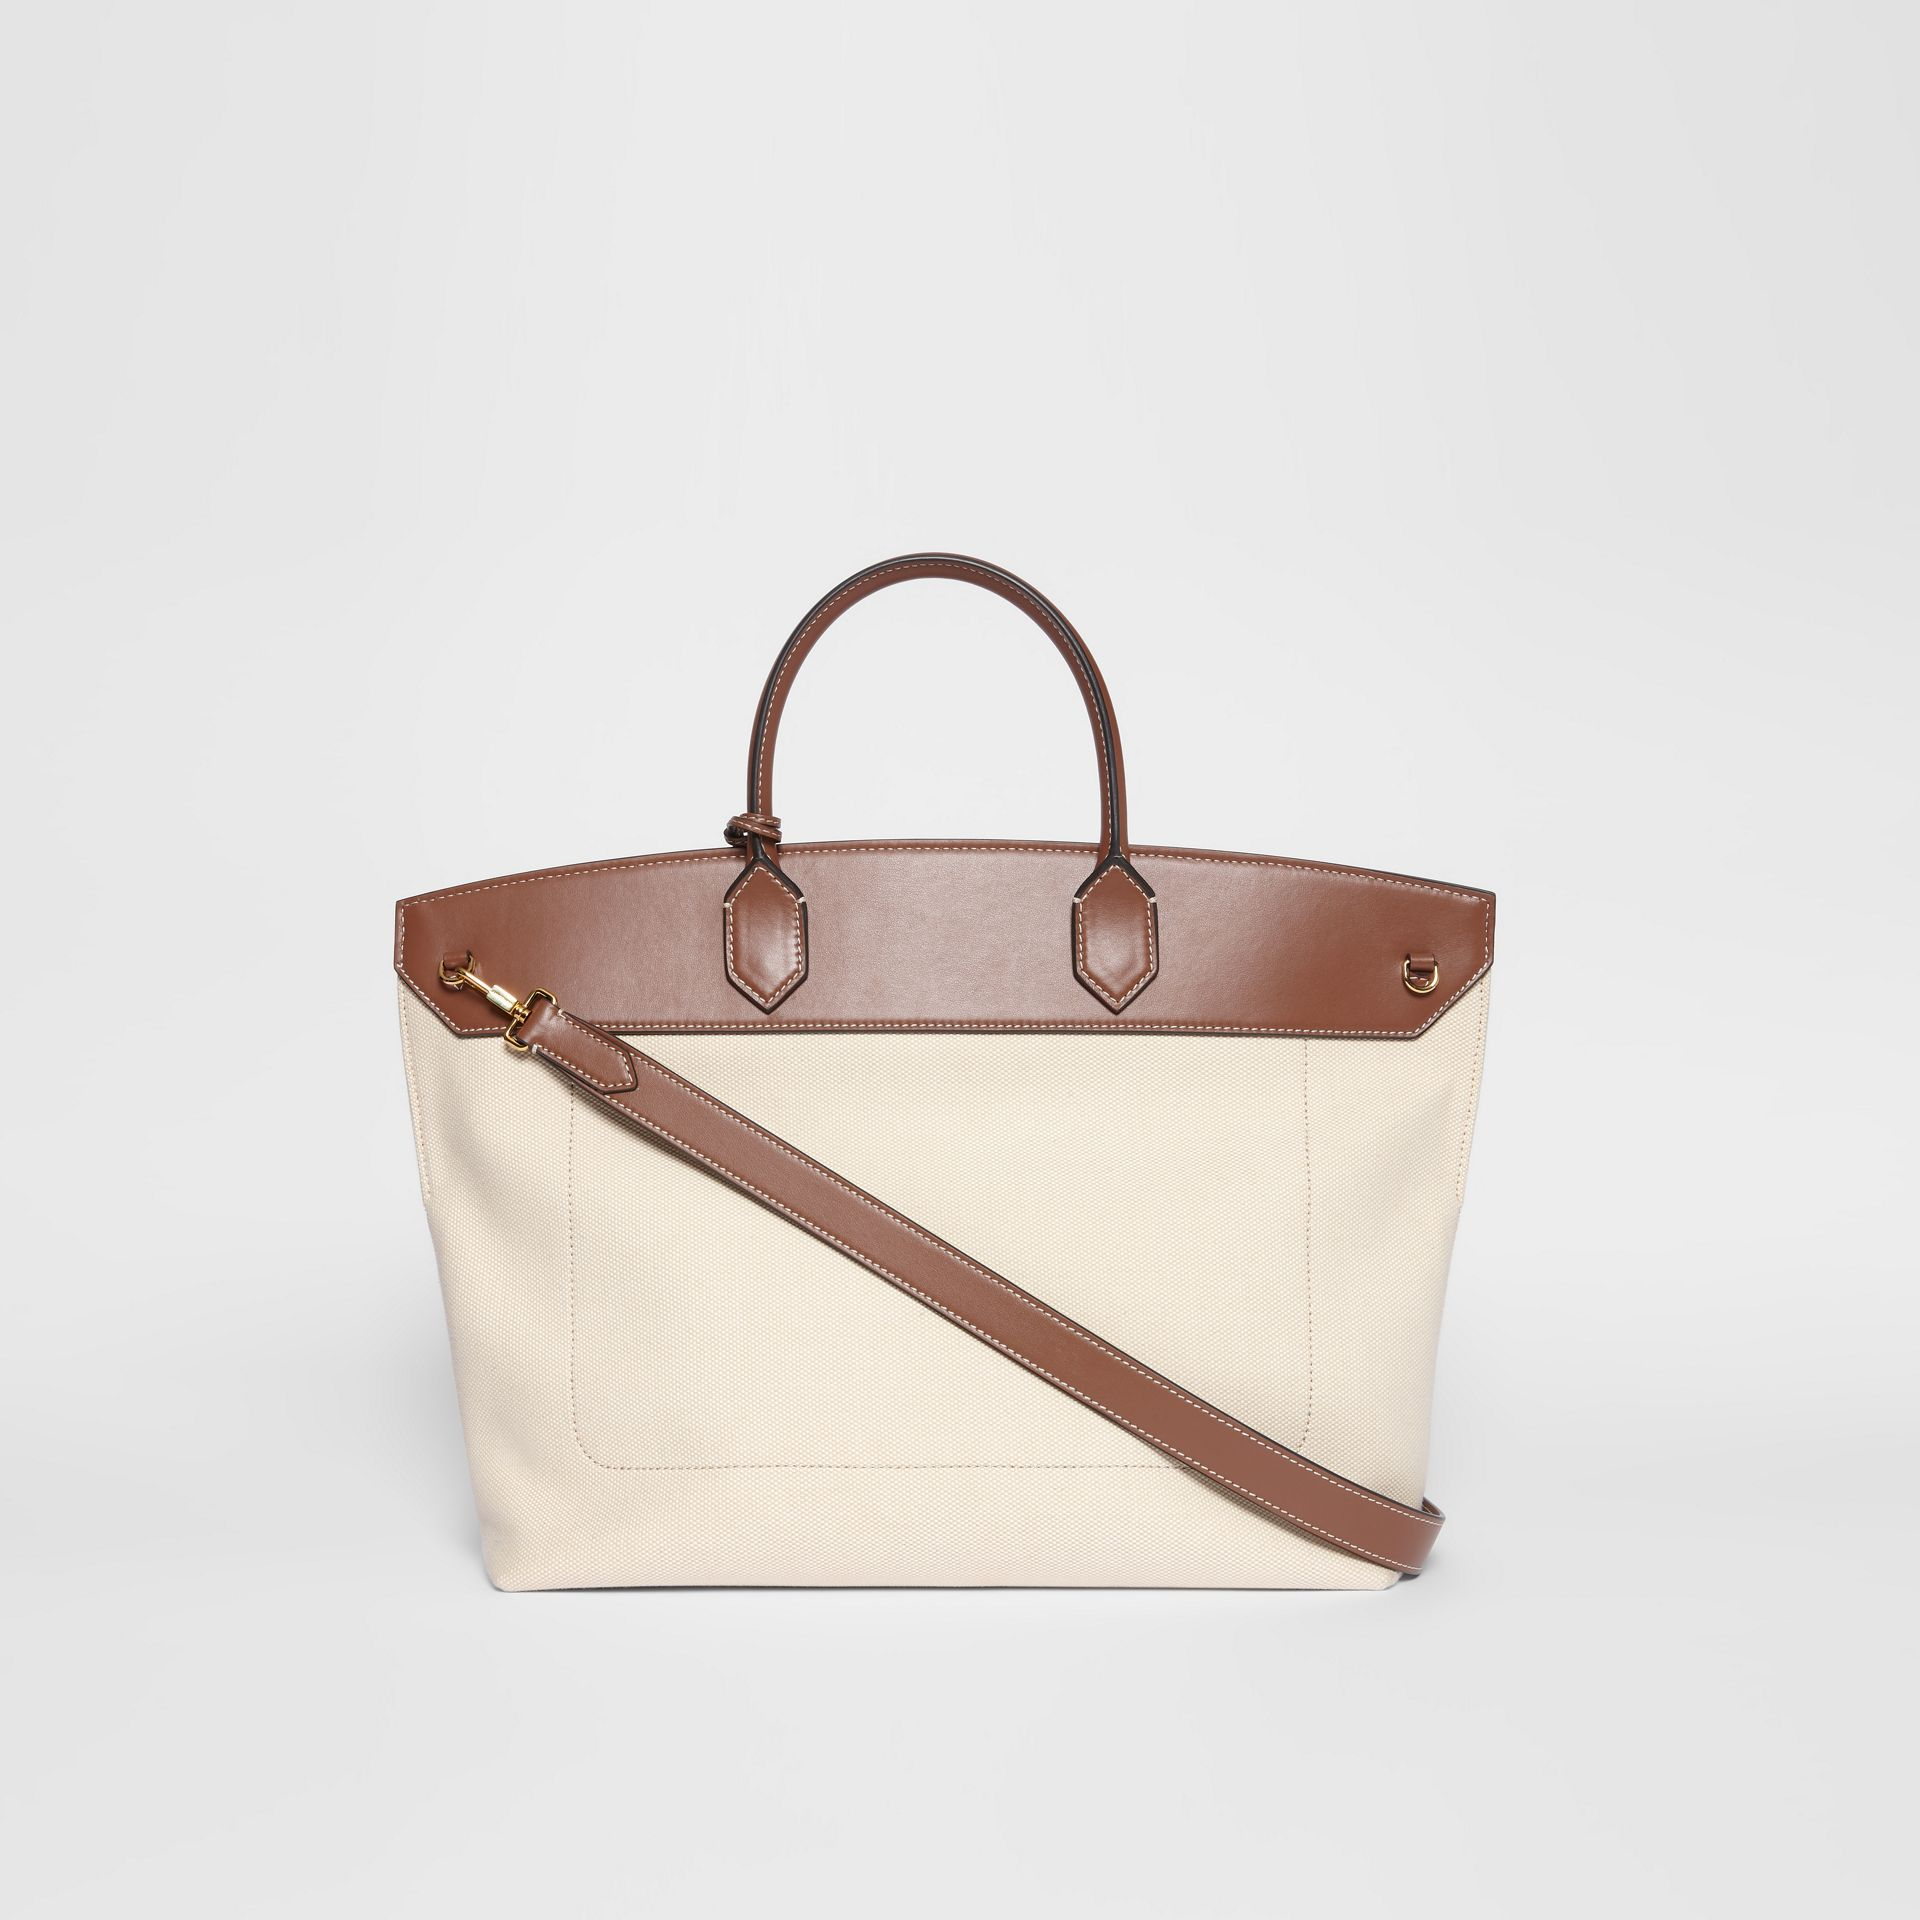 Cotton Canvas and Leather Society Top Handle Bag in Natural/malt Brown - Women | Burberry - gallery image 7